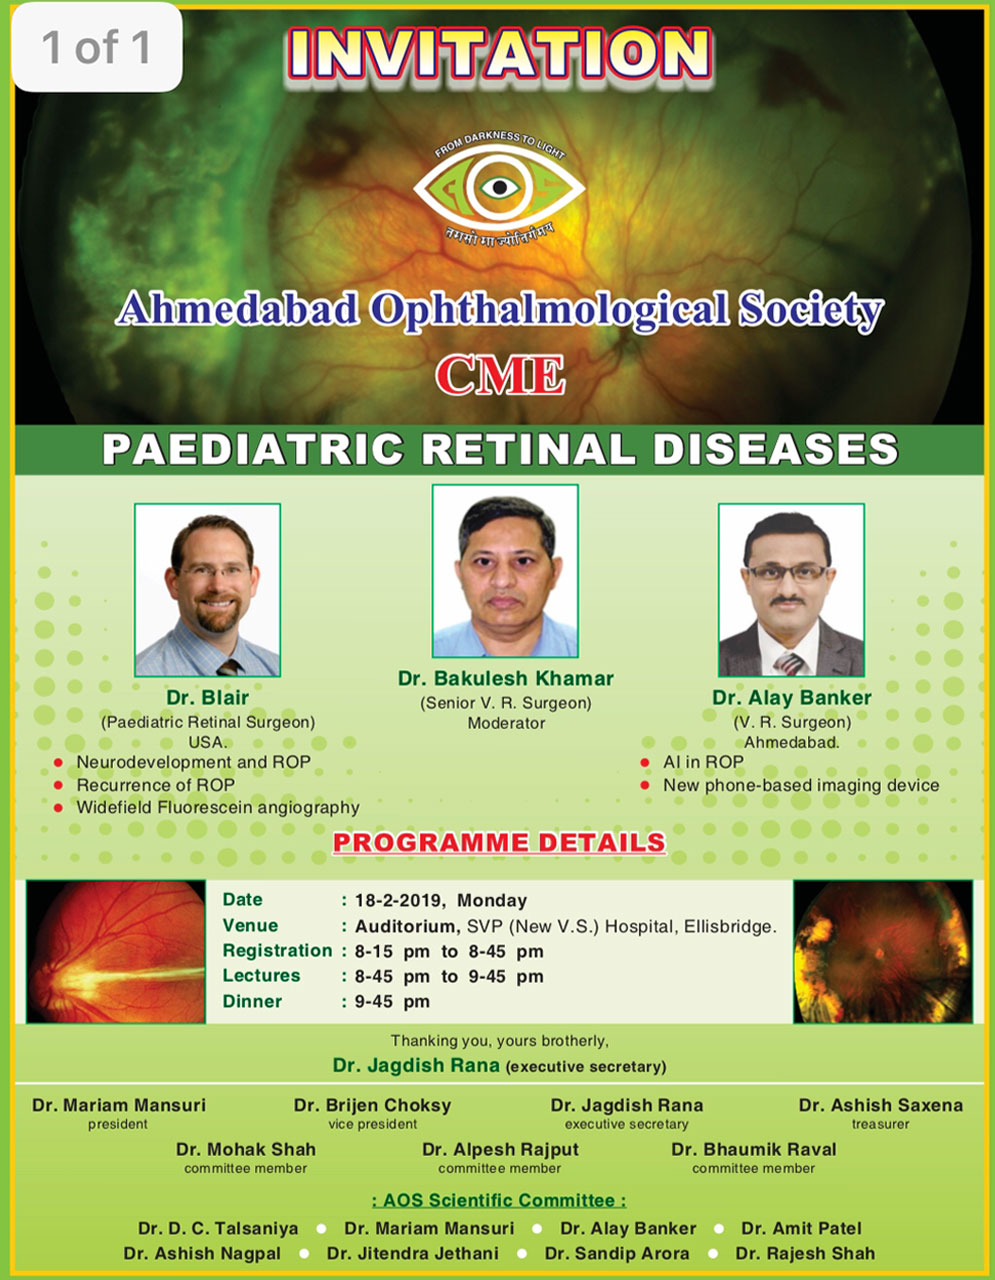 CME on Paediatric Retinal Diseases